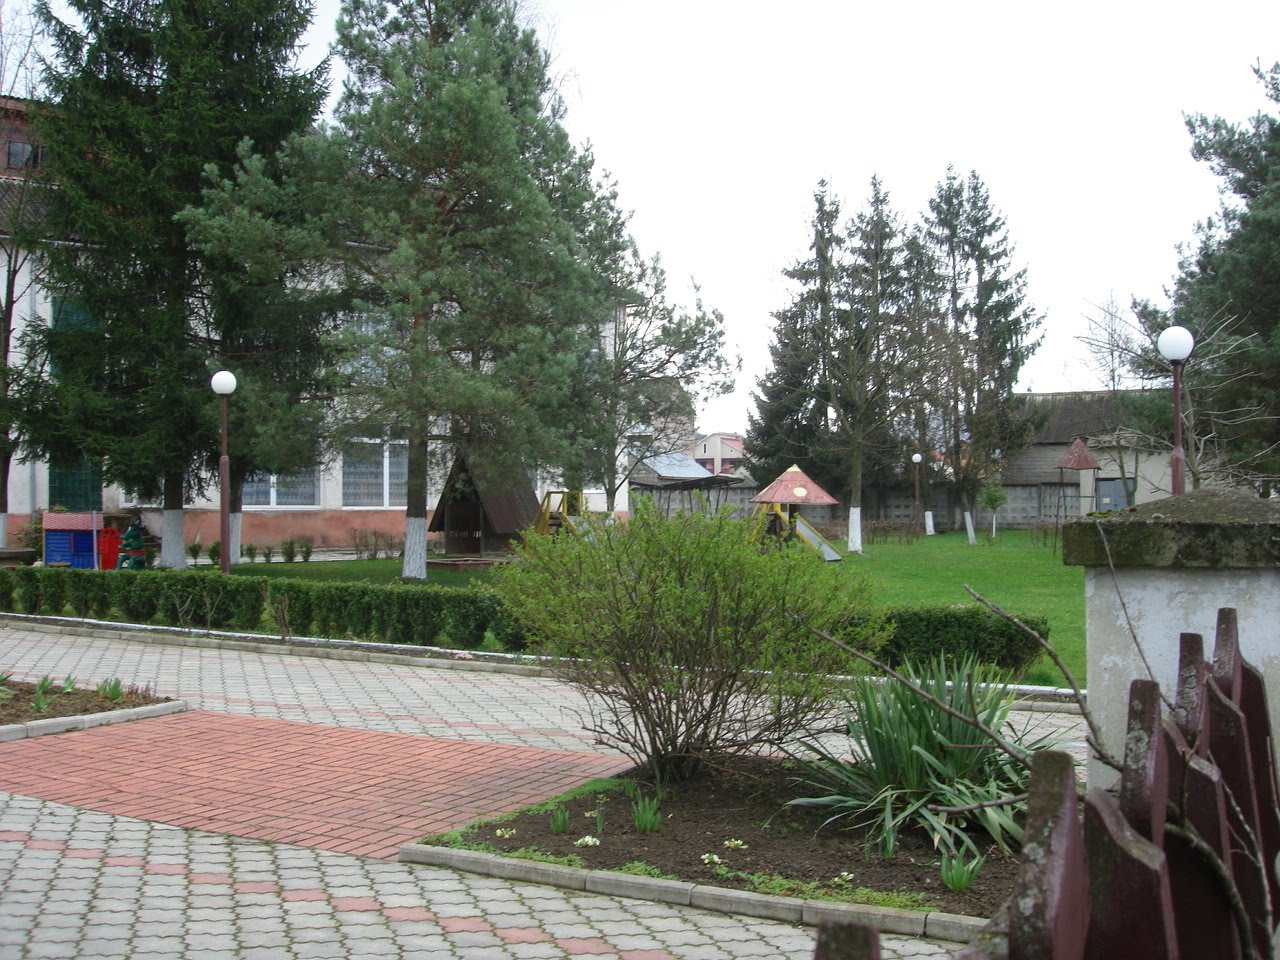 Tuning and airbrushing services in Lugansk and region: a selection of sites